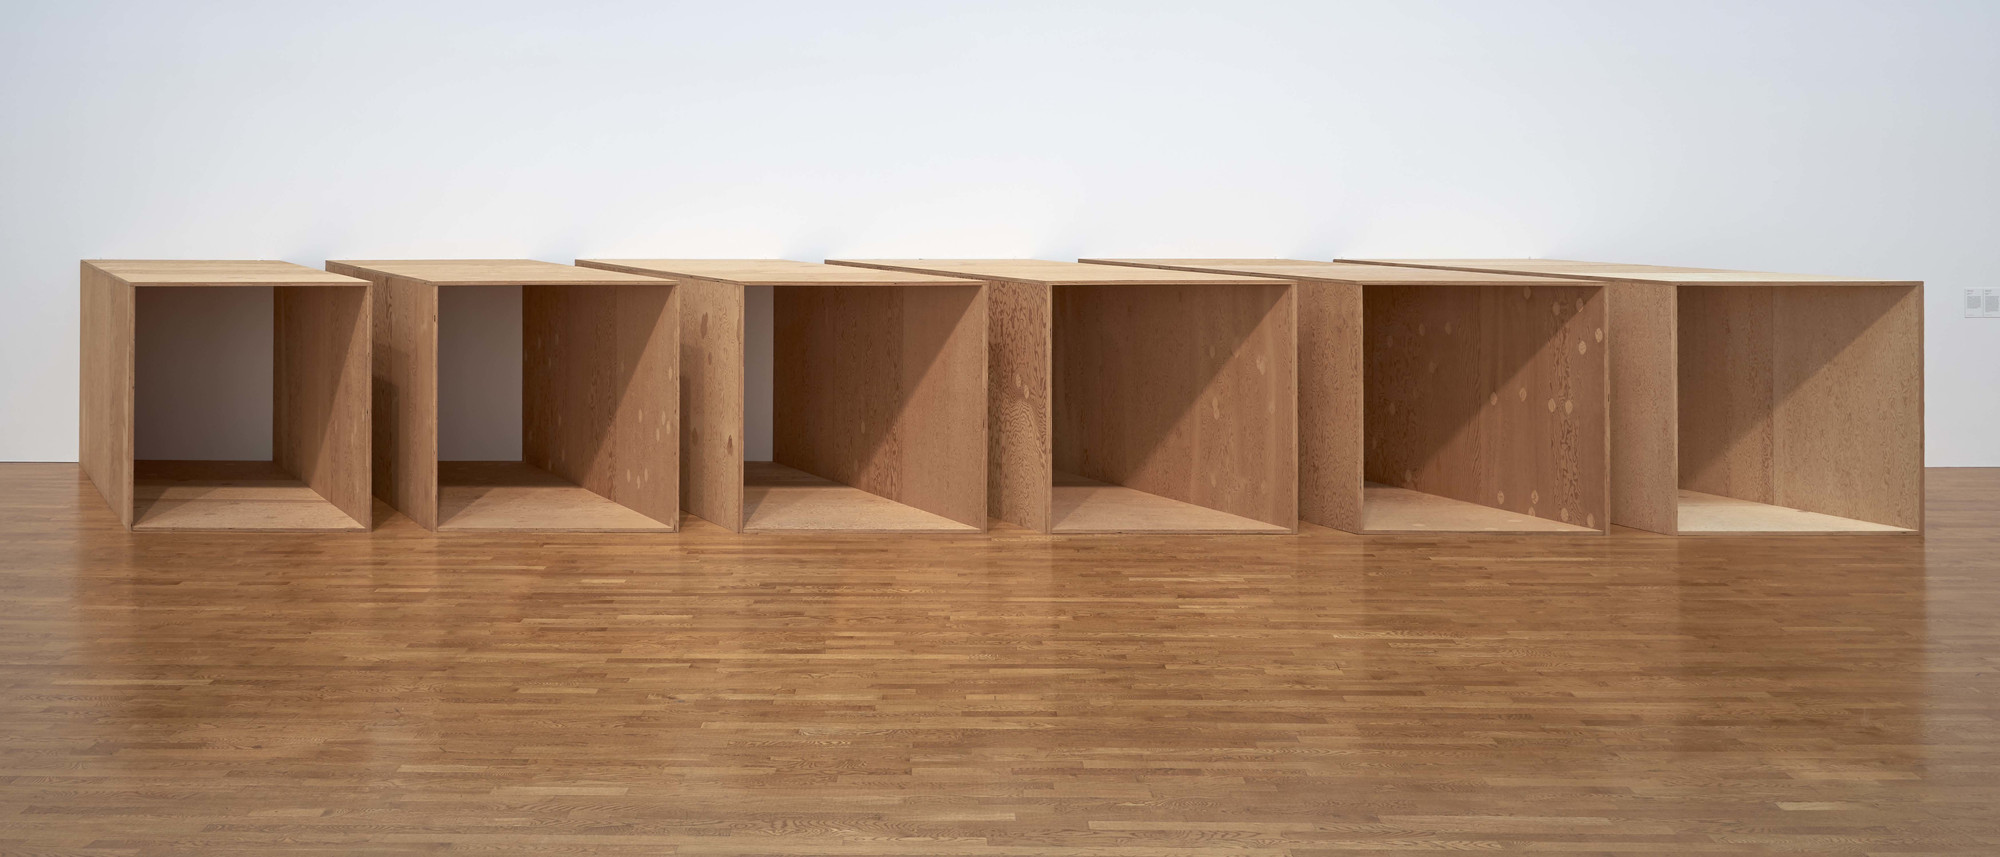 "Donald Judd. _Untitled_. 1973. Plywood. 6 units, each: 72 × 143 × 72"" (182.9 × 363.2 × 182.9 cm) with 12"" intervals. Overall: 72 × 585 × 72"" (182.9 × 1485.9 × 182.9 cm). National Gallery of Canada, Ottawa. © 2020 Judd Foundation / Artists Rights Society (ARS), New York"